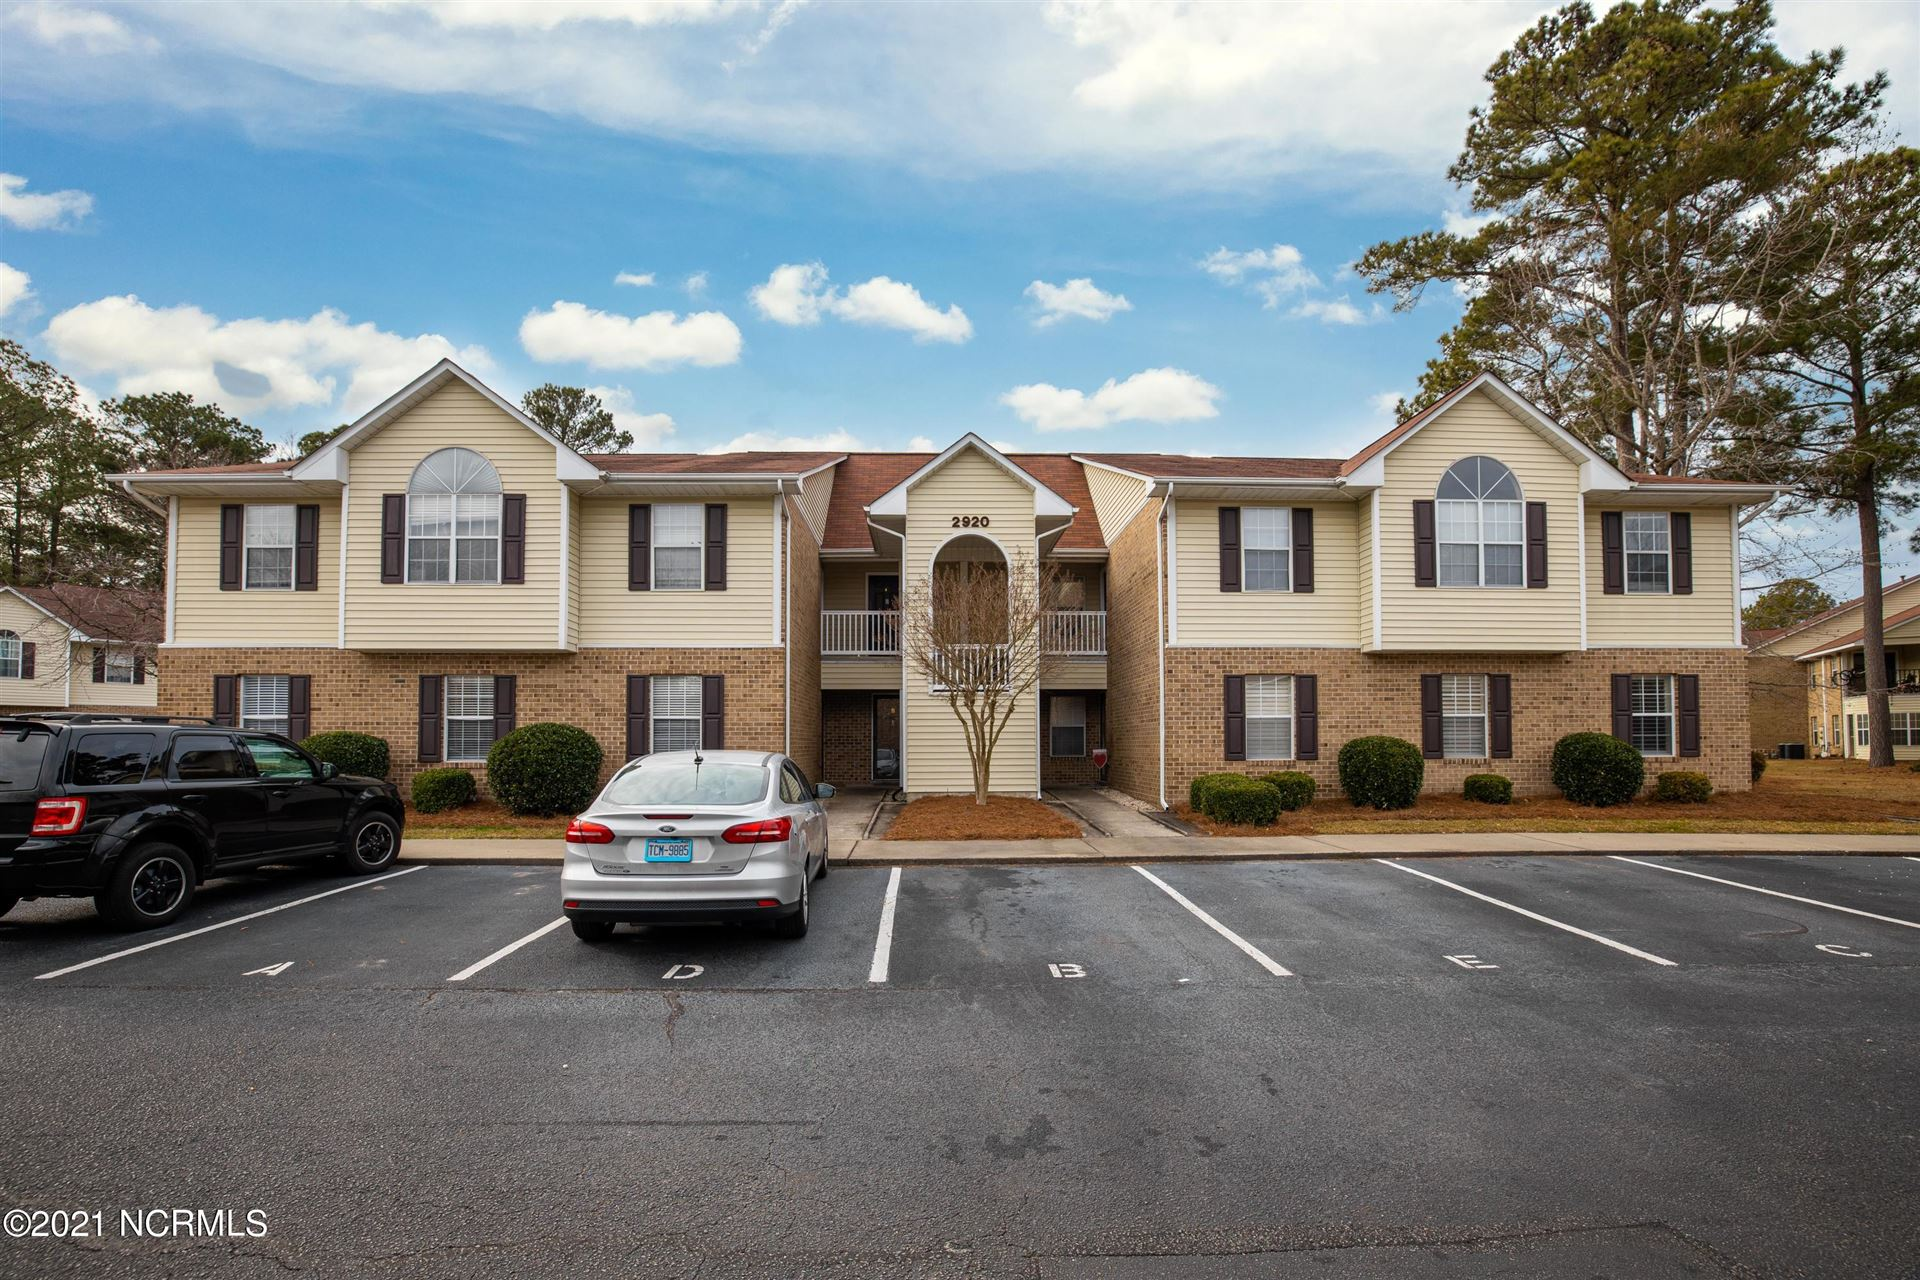 2920 Mulberry Lane #Unit A, Greenville, NC 27858 - #: 100253701